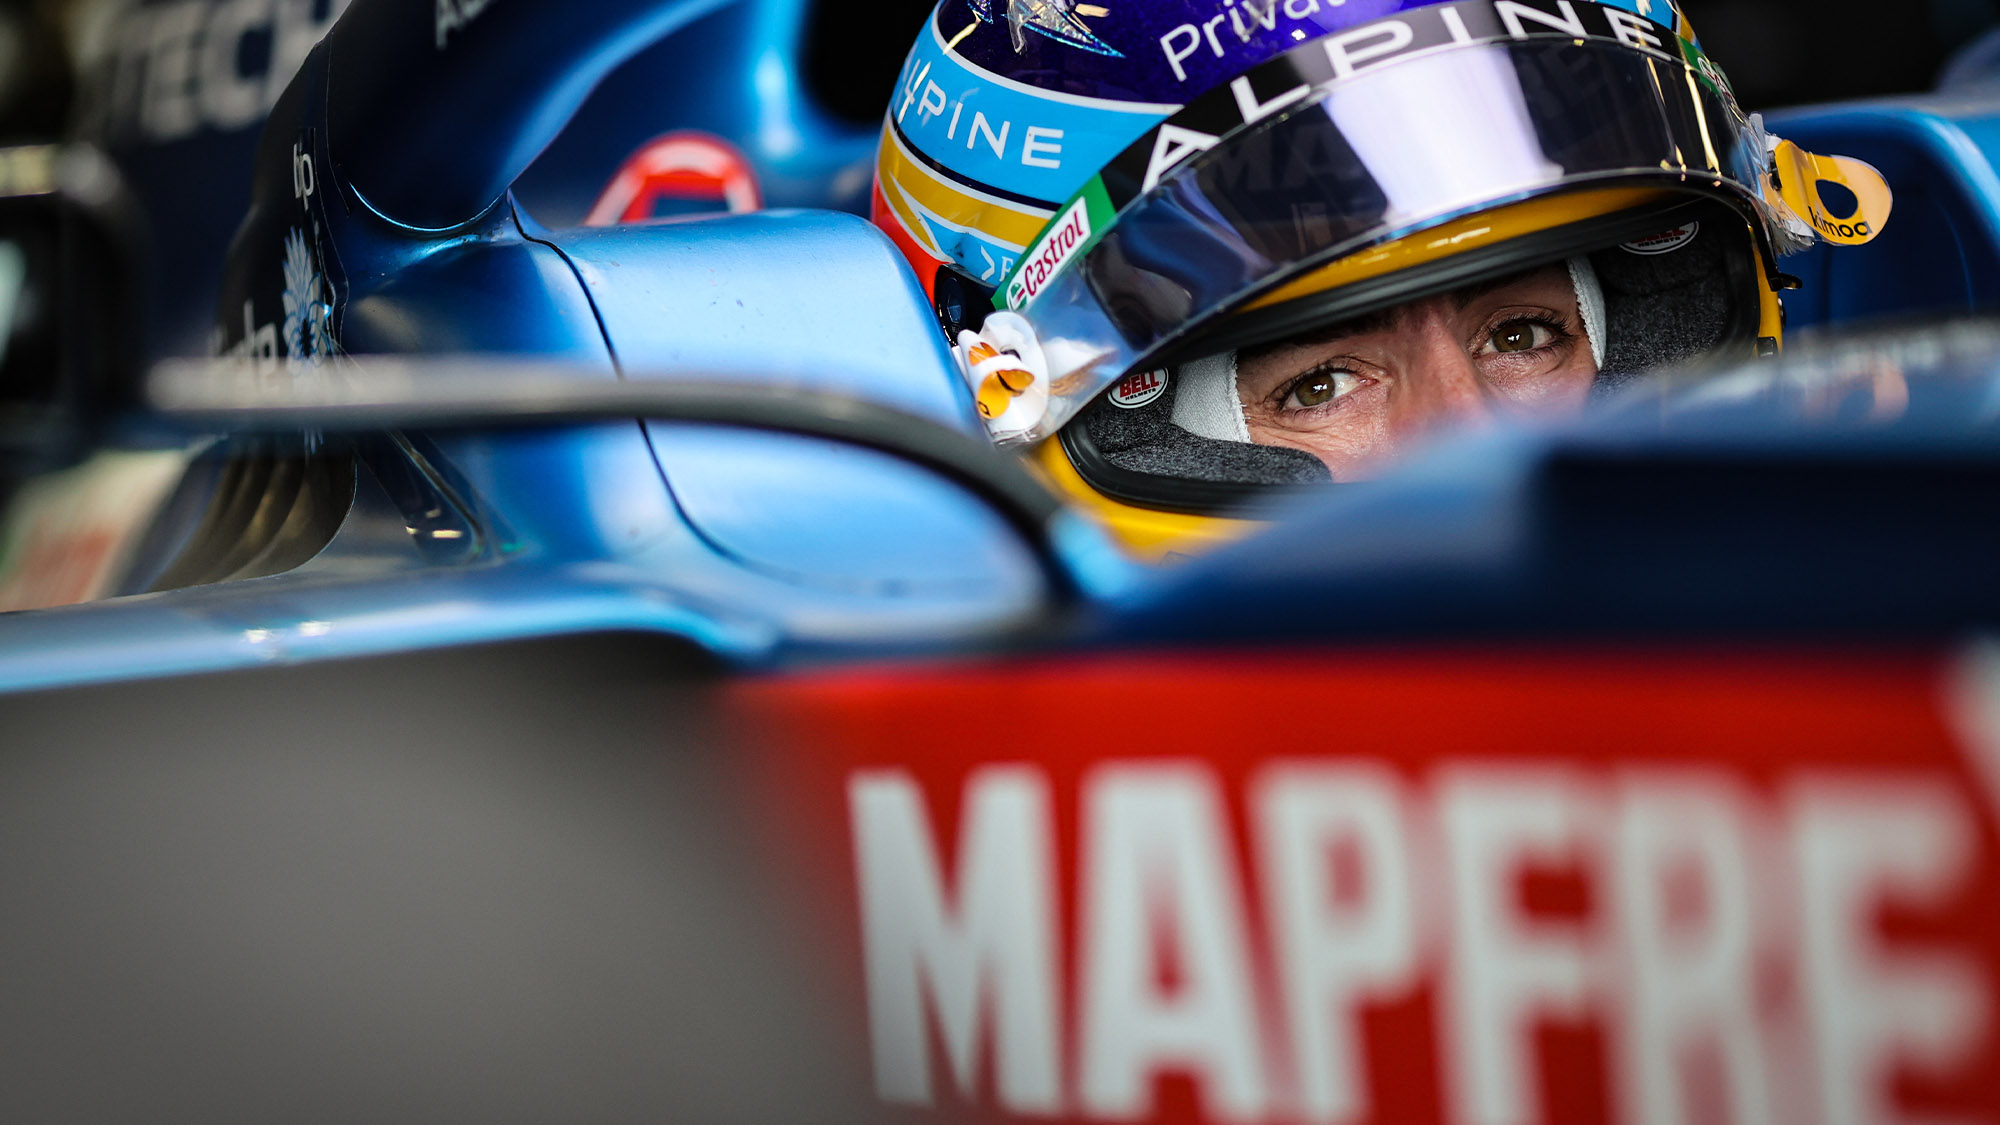 Fernando Alonso in the cockpit of his alpine in 2021